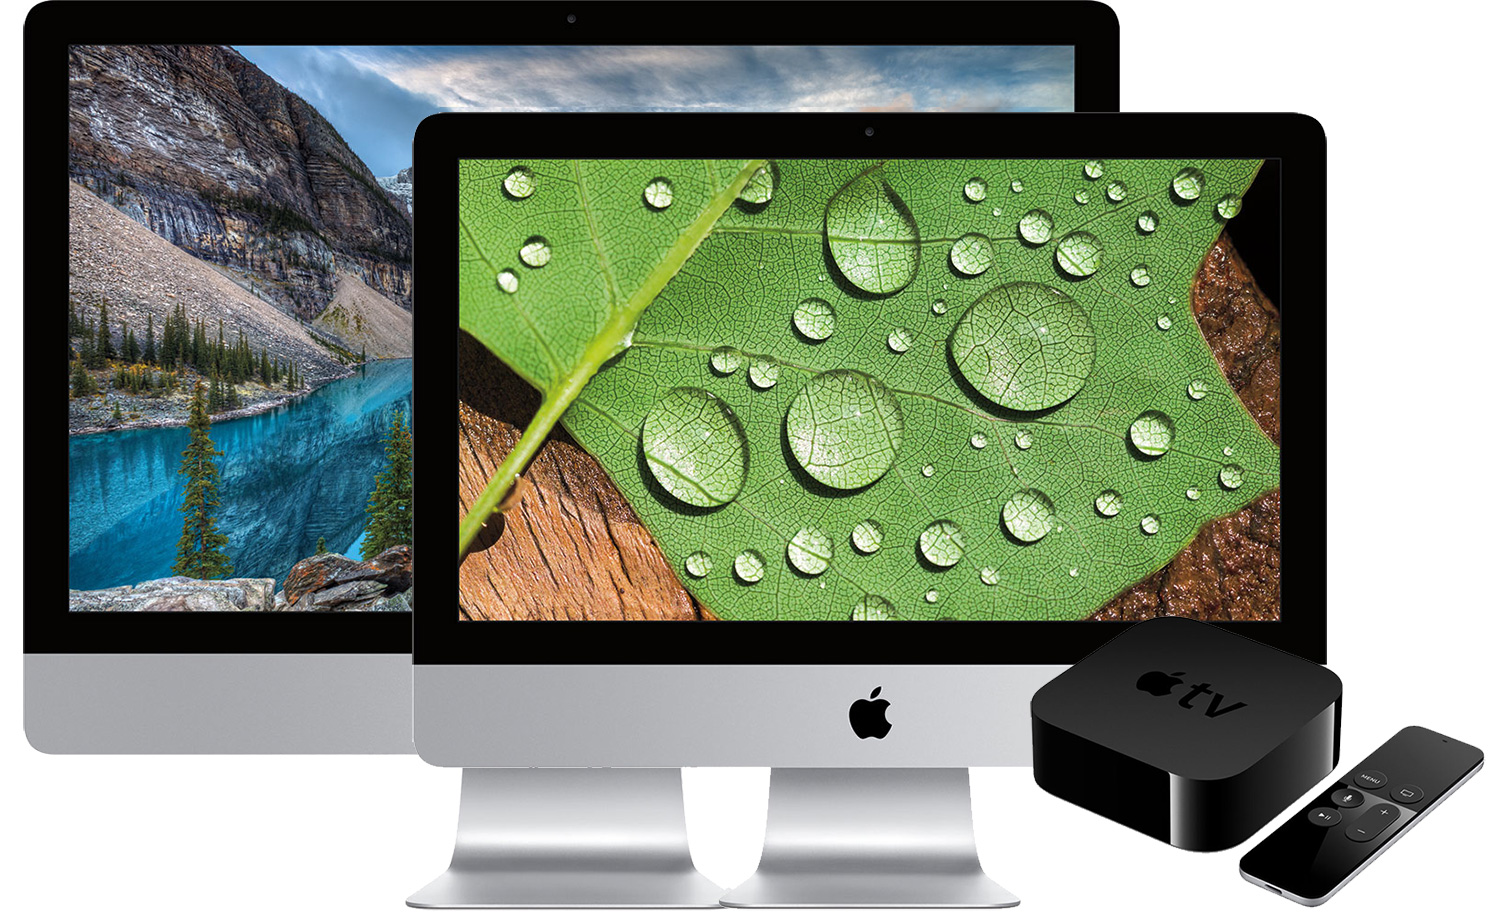 Free 32GB Apple TV and $60-$111 discounts on iMac 4Ks & iMac 5Ks, plus $150 coupons on all custom configs (or Free AppleCare)